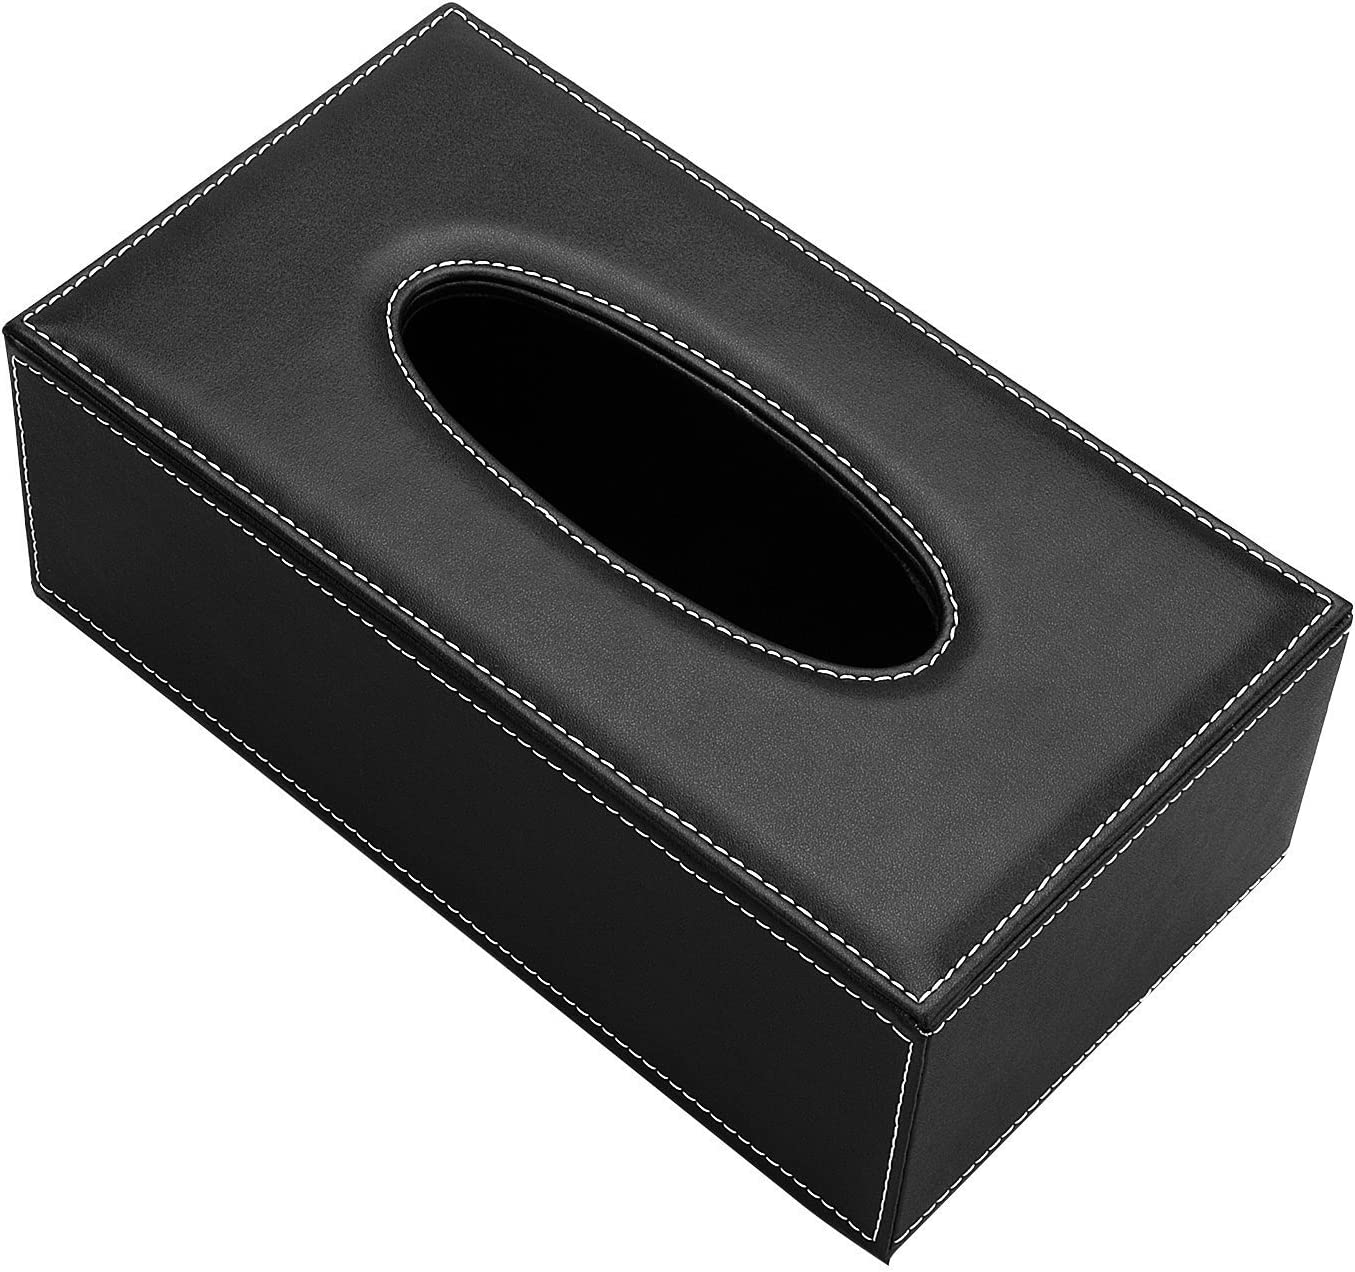 Smonet lusso PU tovagliolo di carta velina scatola del vassoio di pompaggio per home office auto Automotive decorazione copertura del tessuto box dispenser del supporto Sheep Leather Black